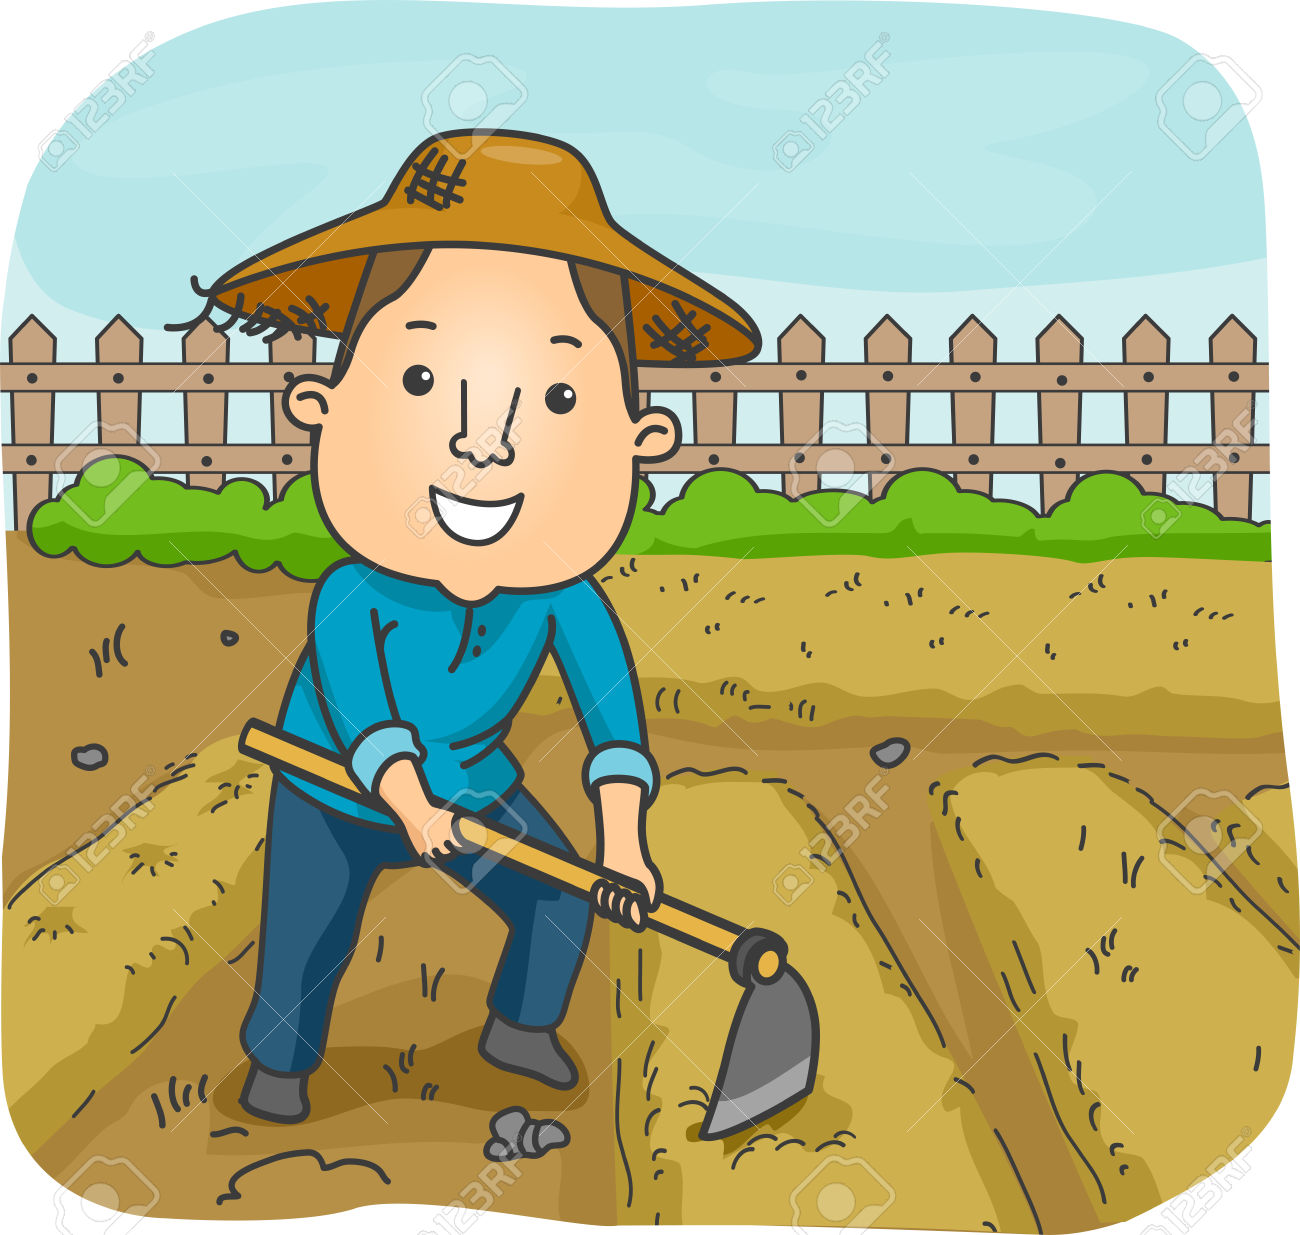 Illustration Of A Male Farmer Using A Hoe To Cultivate A Garden.